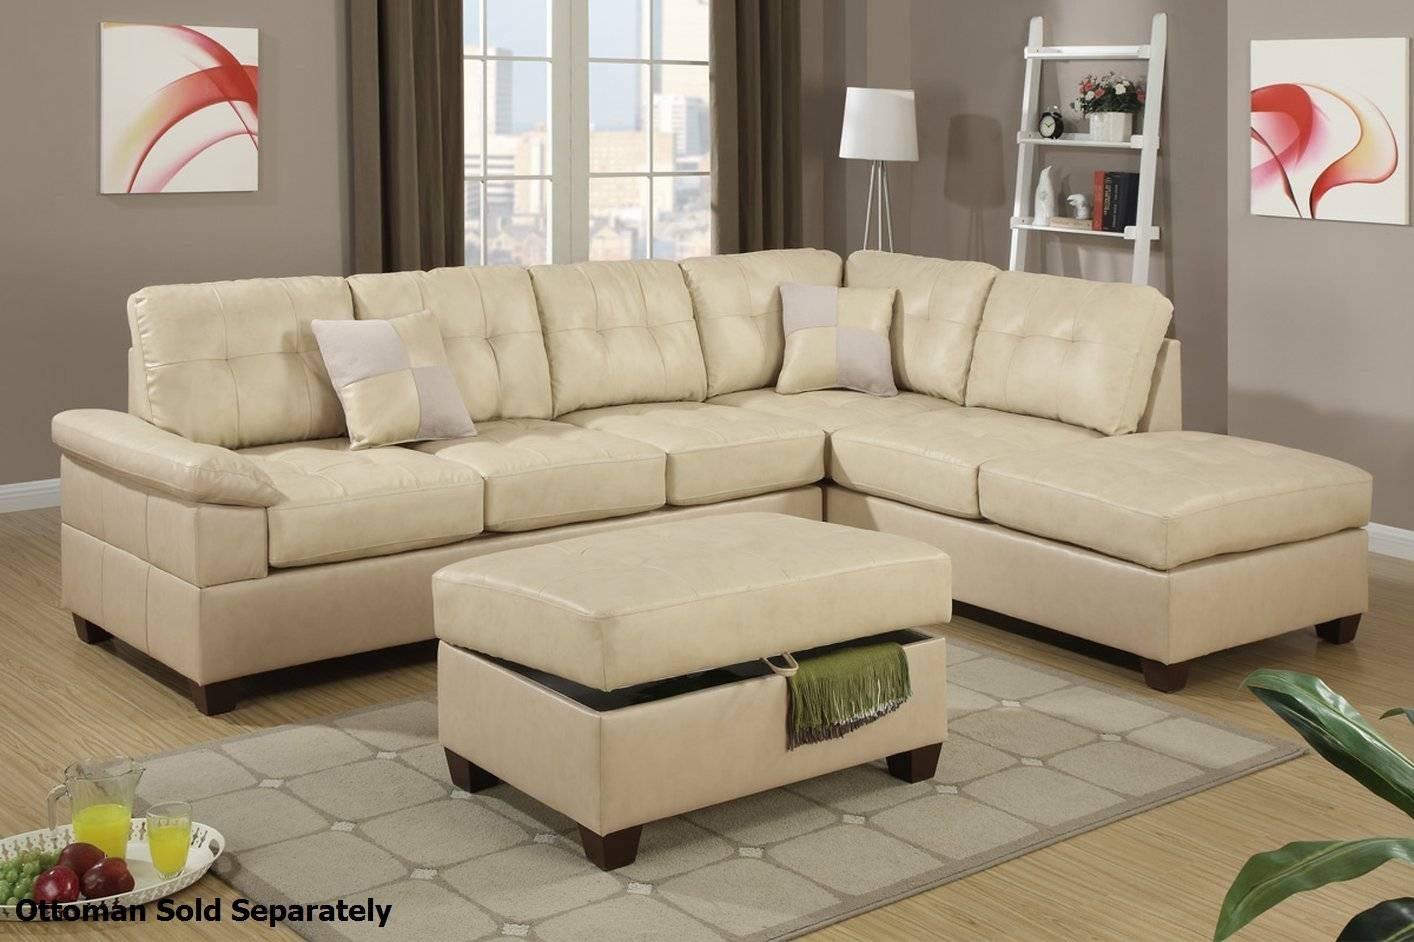 Furniture: Luxury Leather Sectional Sofa For Elegant Living Room throughout Ivory Leather Sofas (Image 8 of 30)